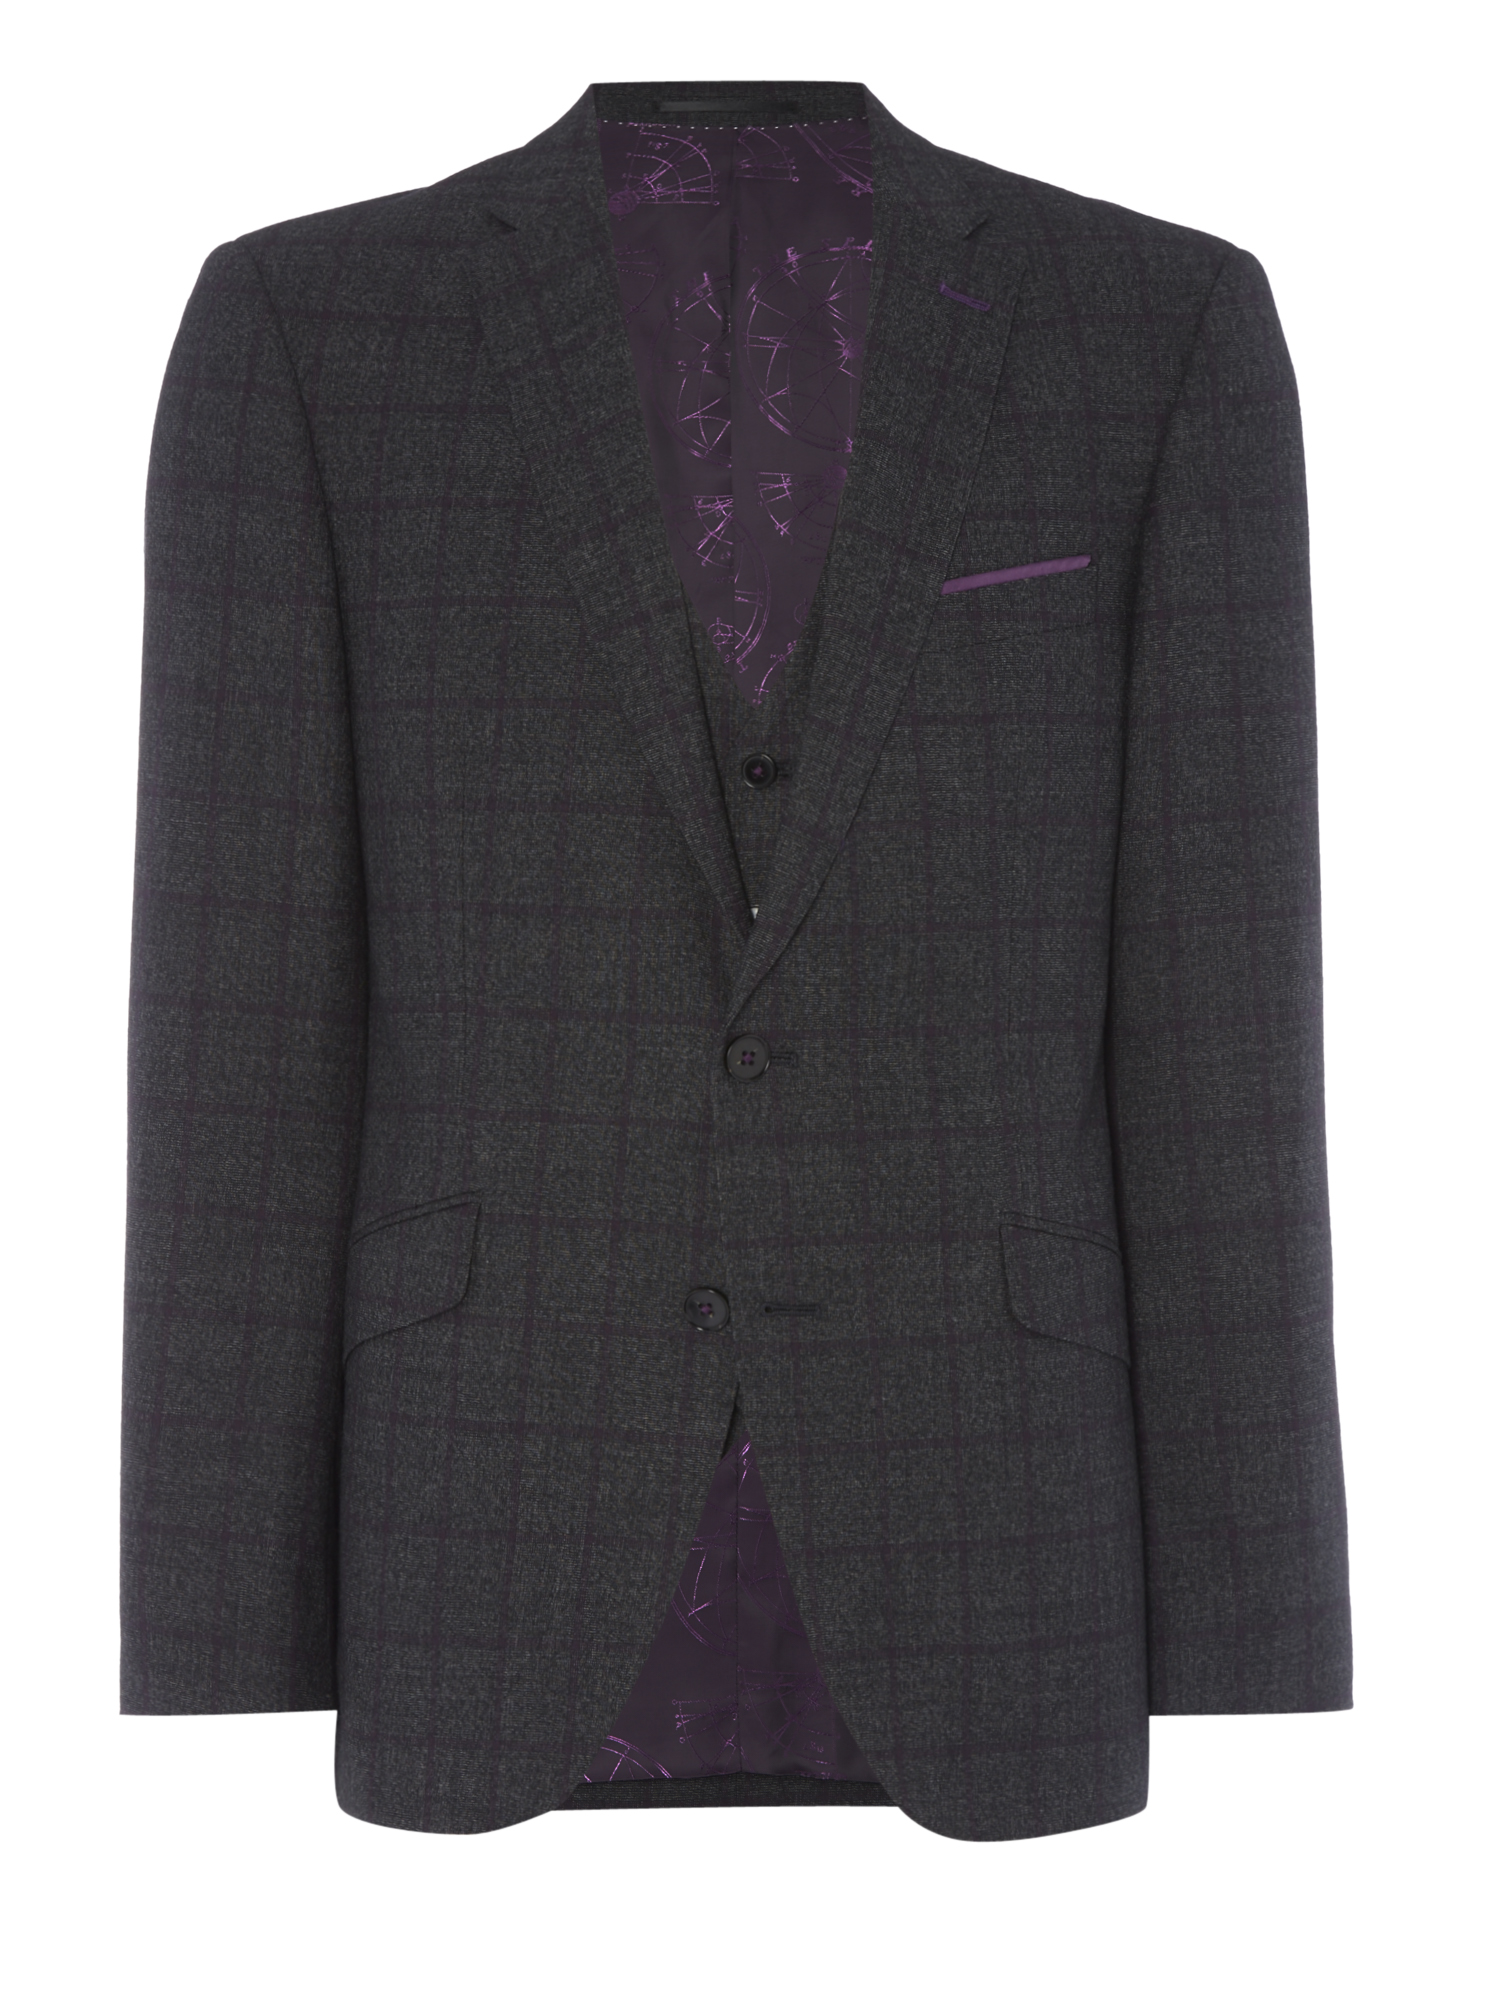 Tapered fit checked pure wool mix n match suit